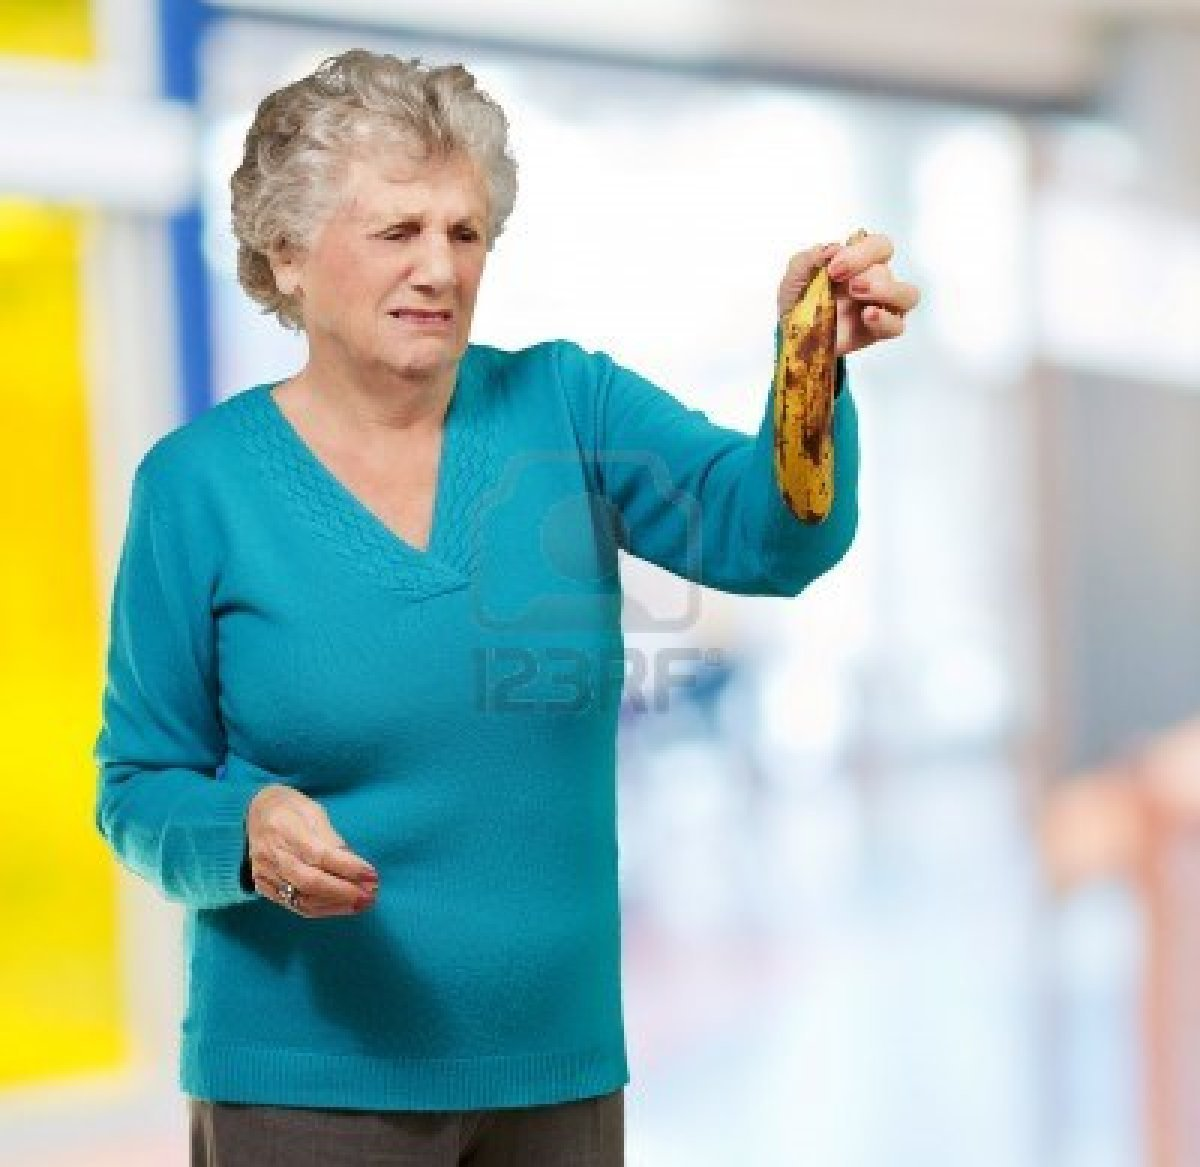 finegarten:  senior woman holding a rotten banana indoor